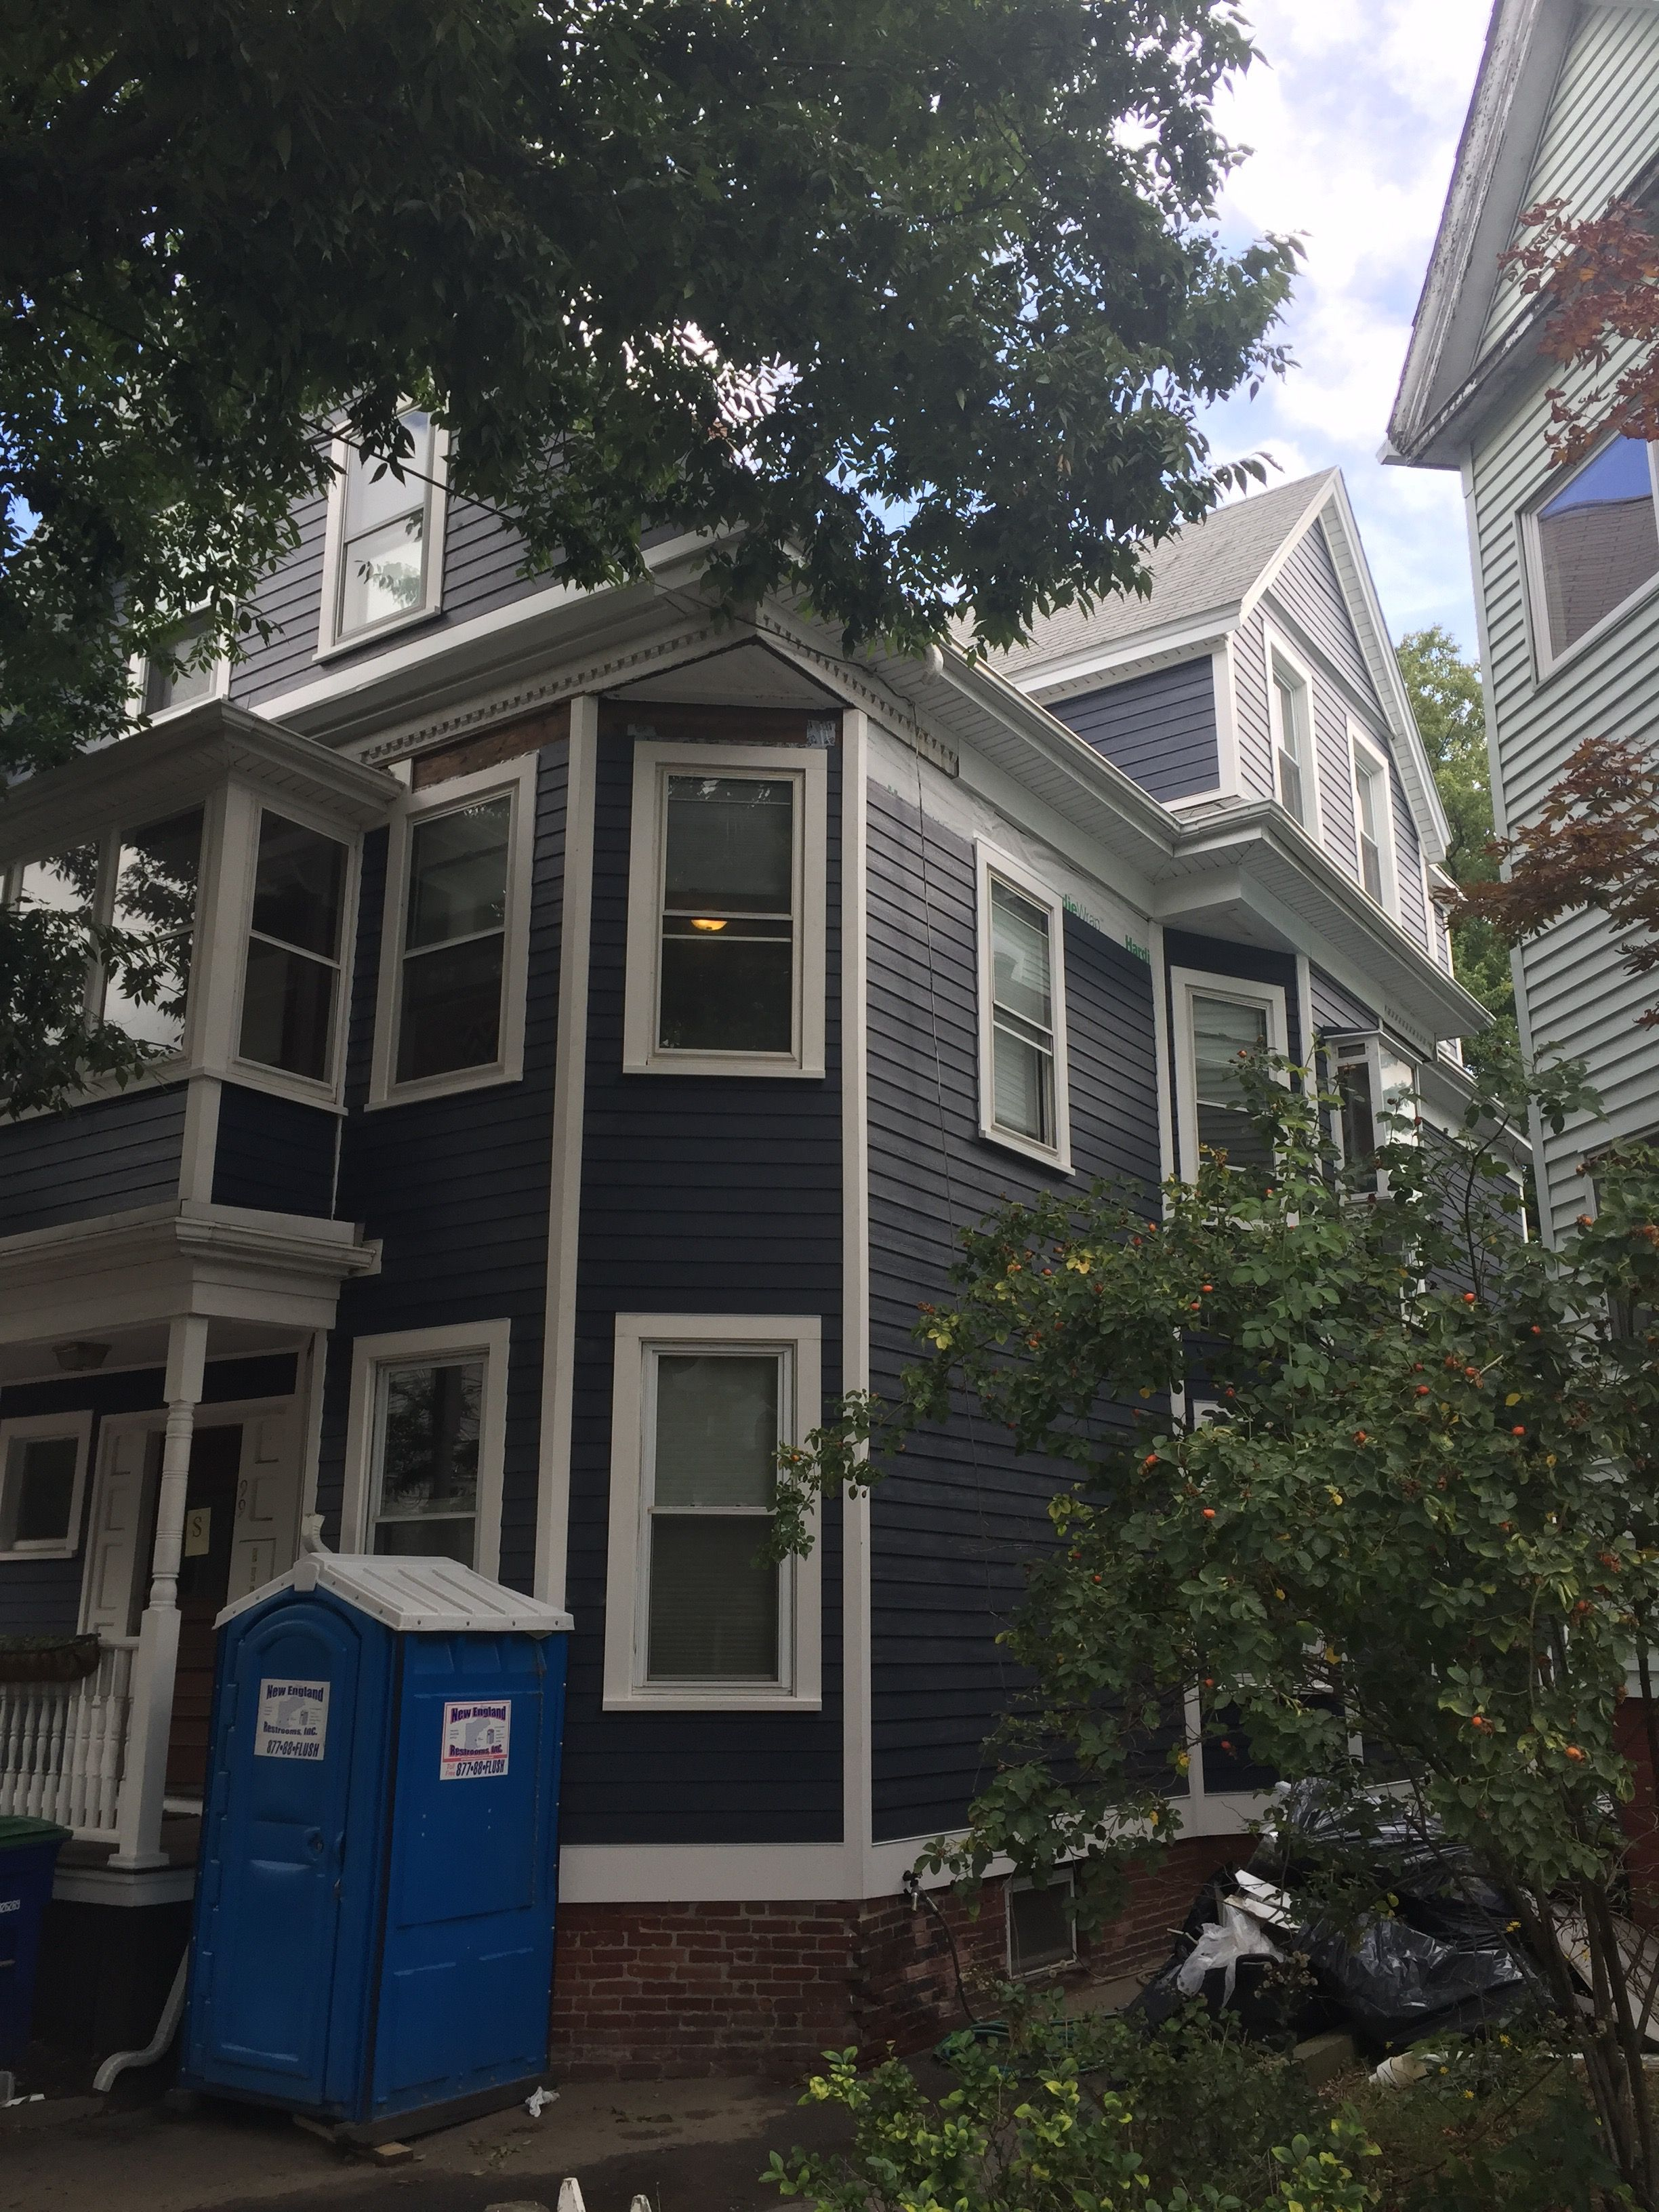 Pbs Installed James Hardie Fiber Cement Siding Cedar Mill With Hardie House Wrap Siding Color Is Deep Ocean T Hardie Siding Ocean House Window Trim Exterior